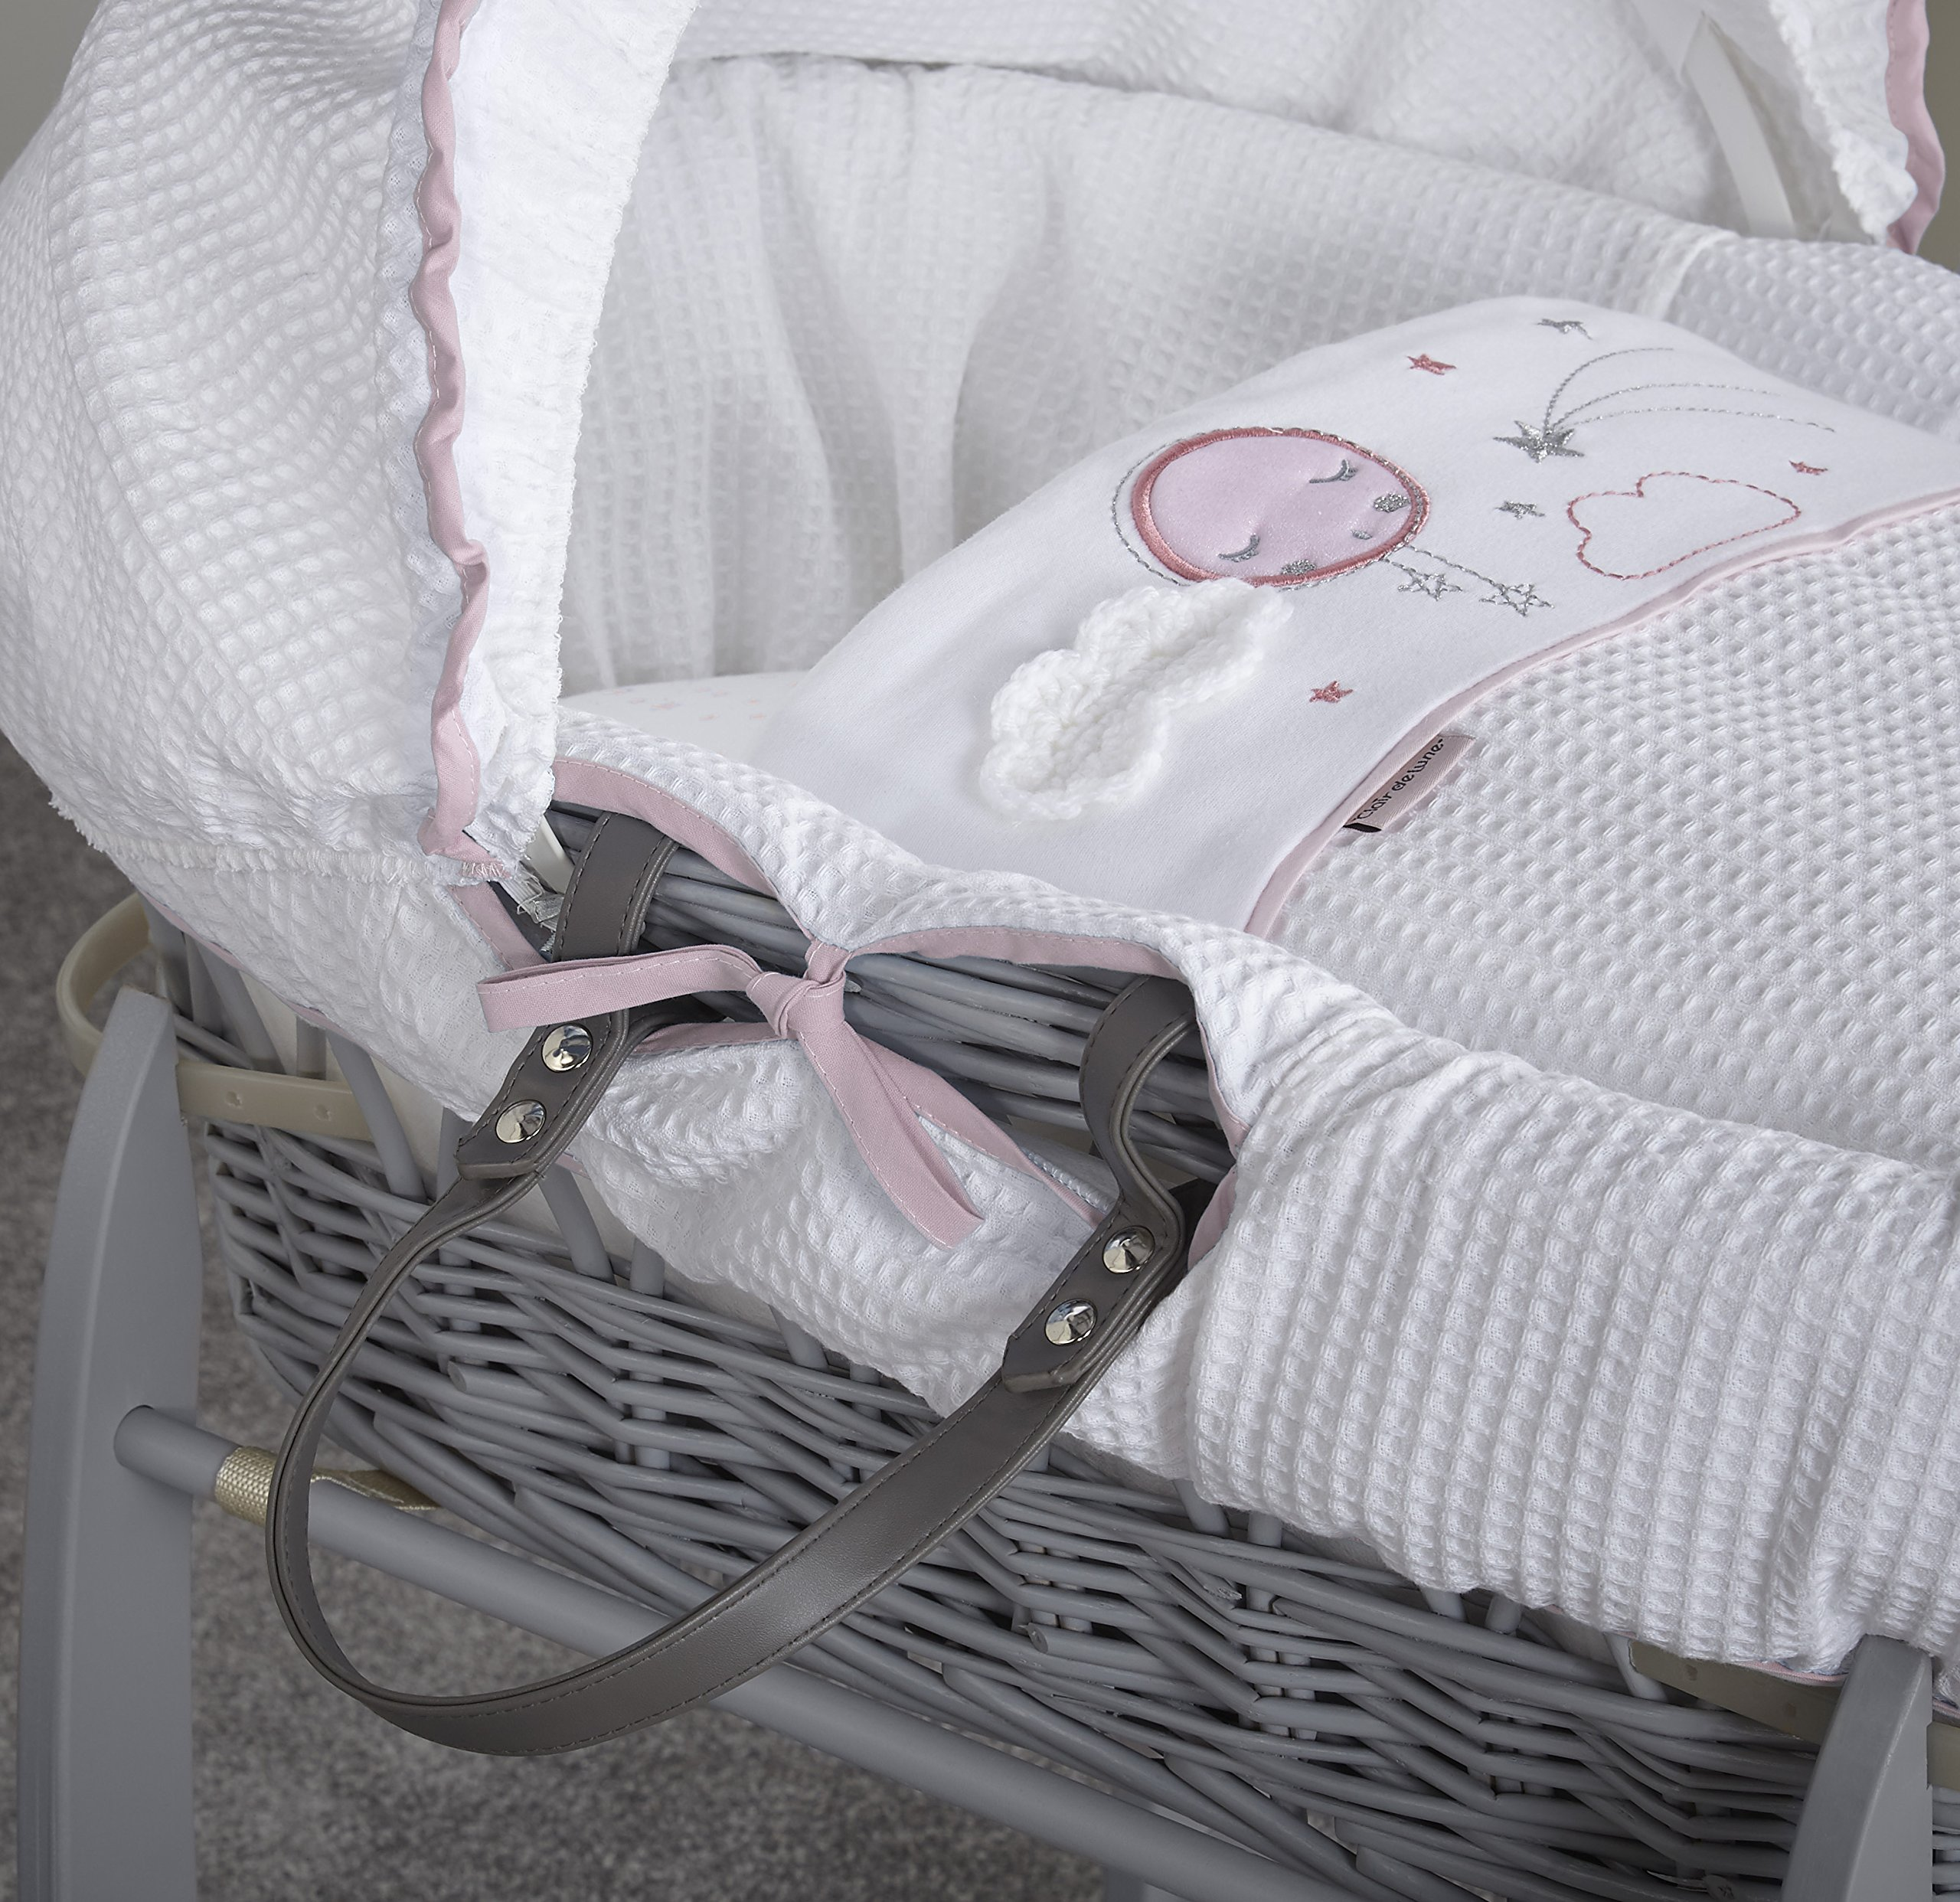 Clair de Lune Wicker Moses Basket, Pink/Grey, Over The Moon Clair de Lune Made from 100% super soft cotton fabric, featuring star prints and a sleepy moon with crocheted cloud appliqué for the perfect finishing touch. Comes complete with a removable, adjustable hood, padded liner, coverlet, 2 carry handles, and a mattress. *stand sold separately. Adjustable hood that's perfect for creating a cosy sleeping space for your precious little one. 3